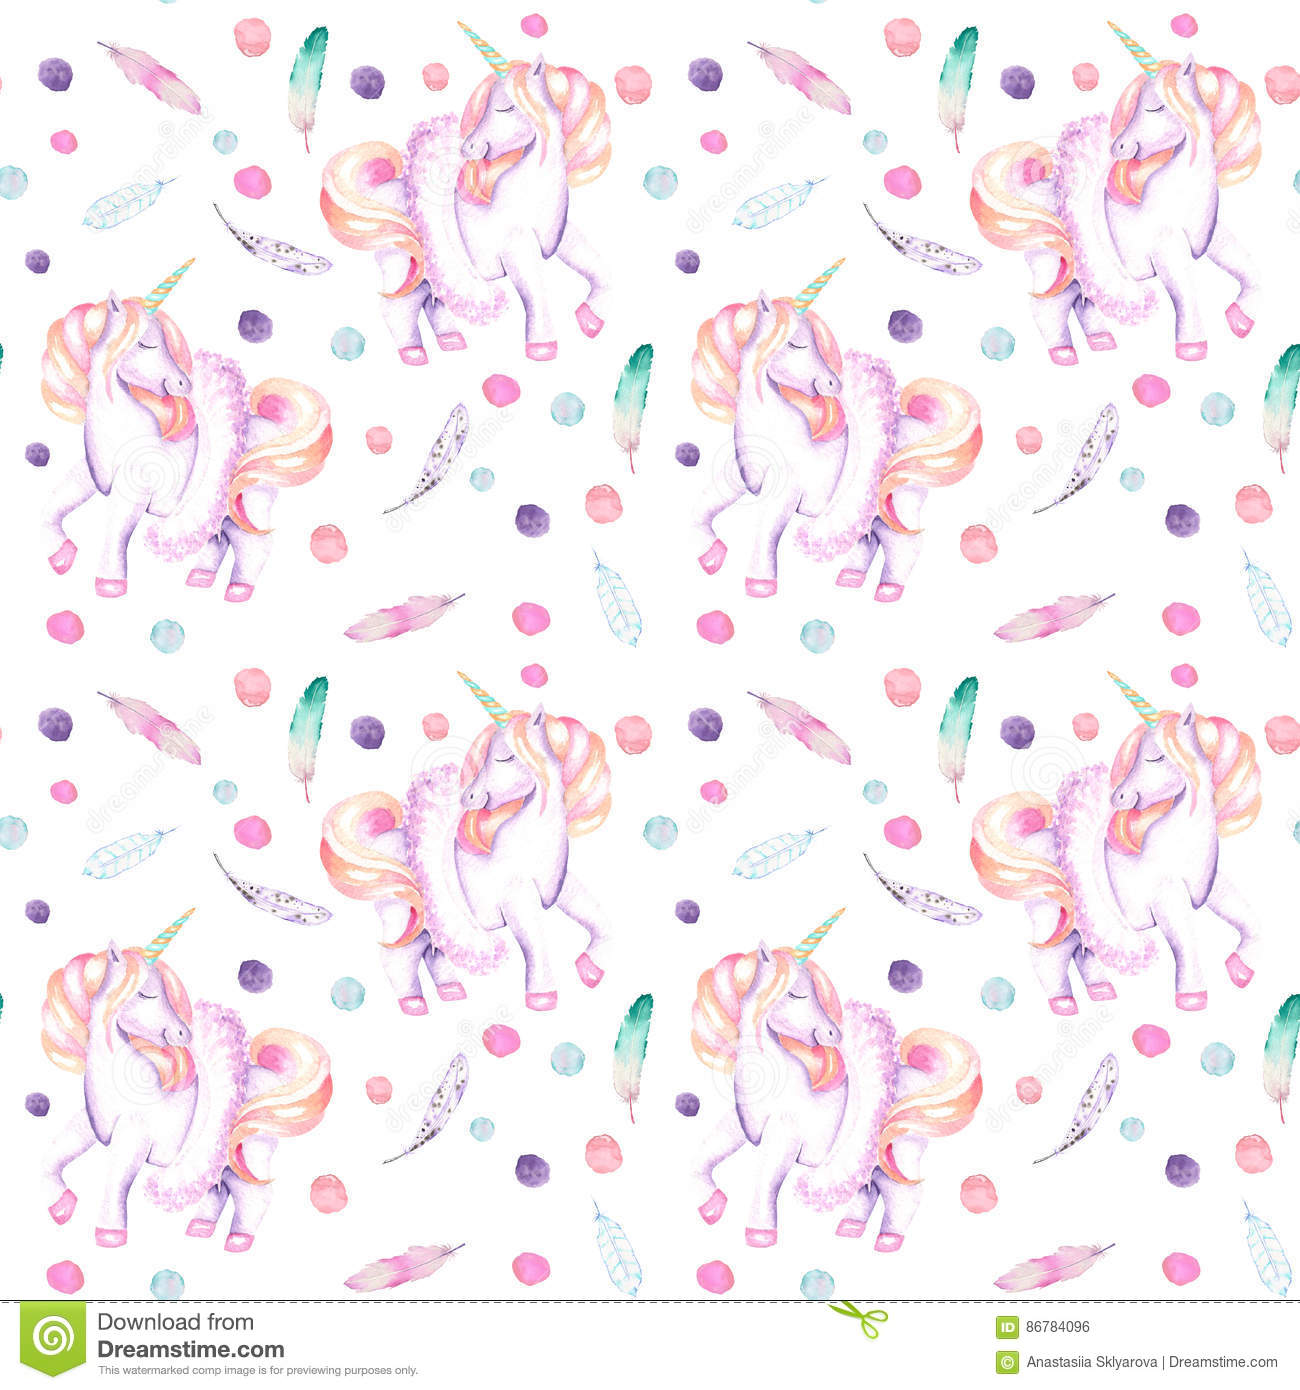 Download Seamless Pattern With Watercolor Pink Unicorn In Tutu, Feathers And Confetti Stock Illustration - Illustration of fabric, dancer: 86784096